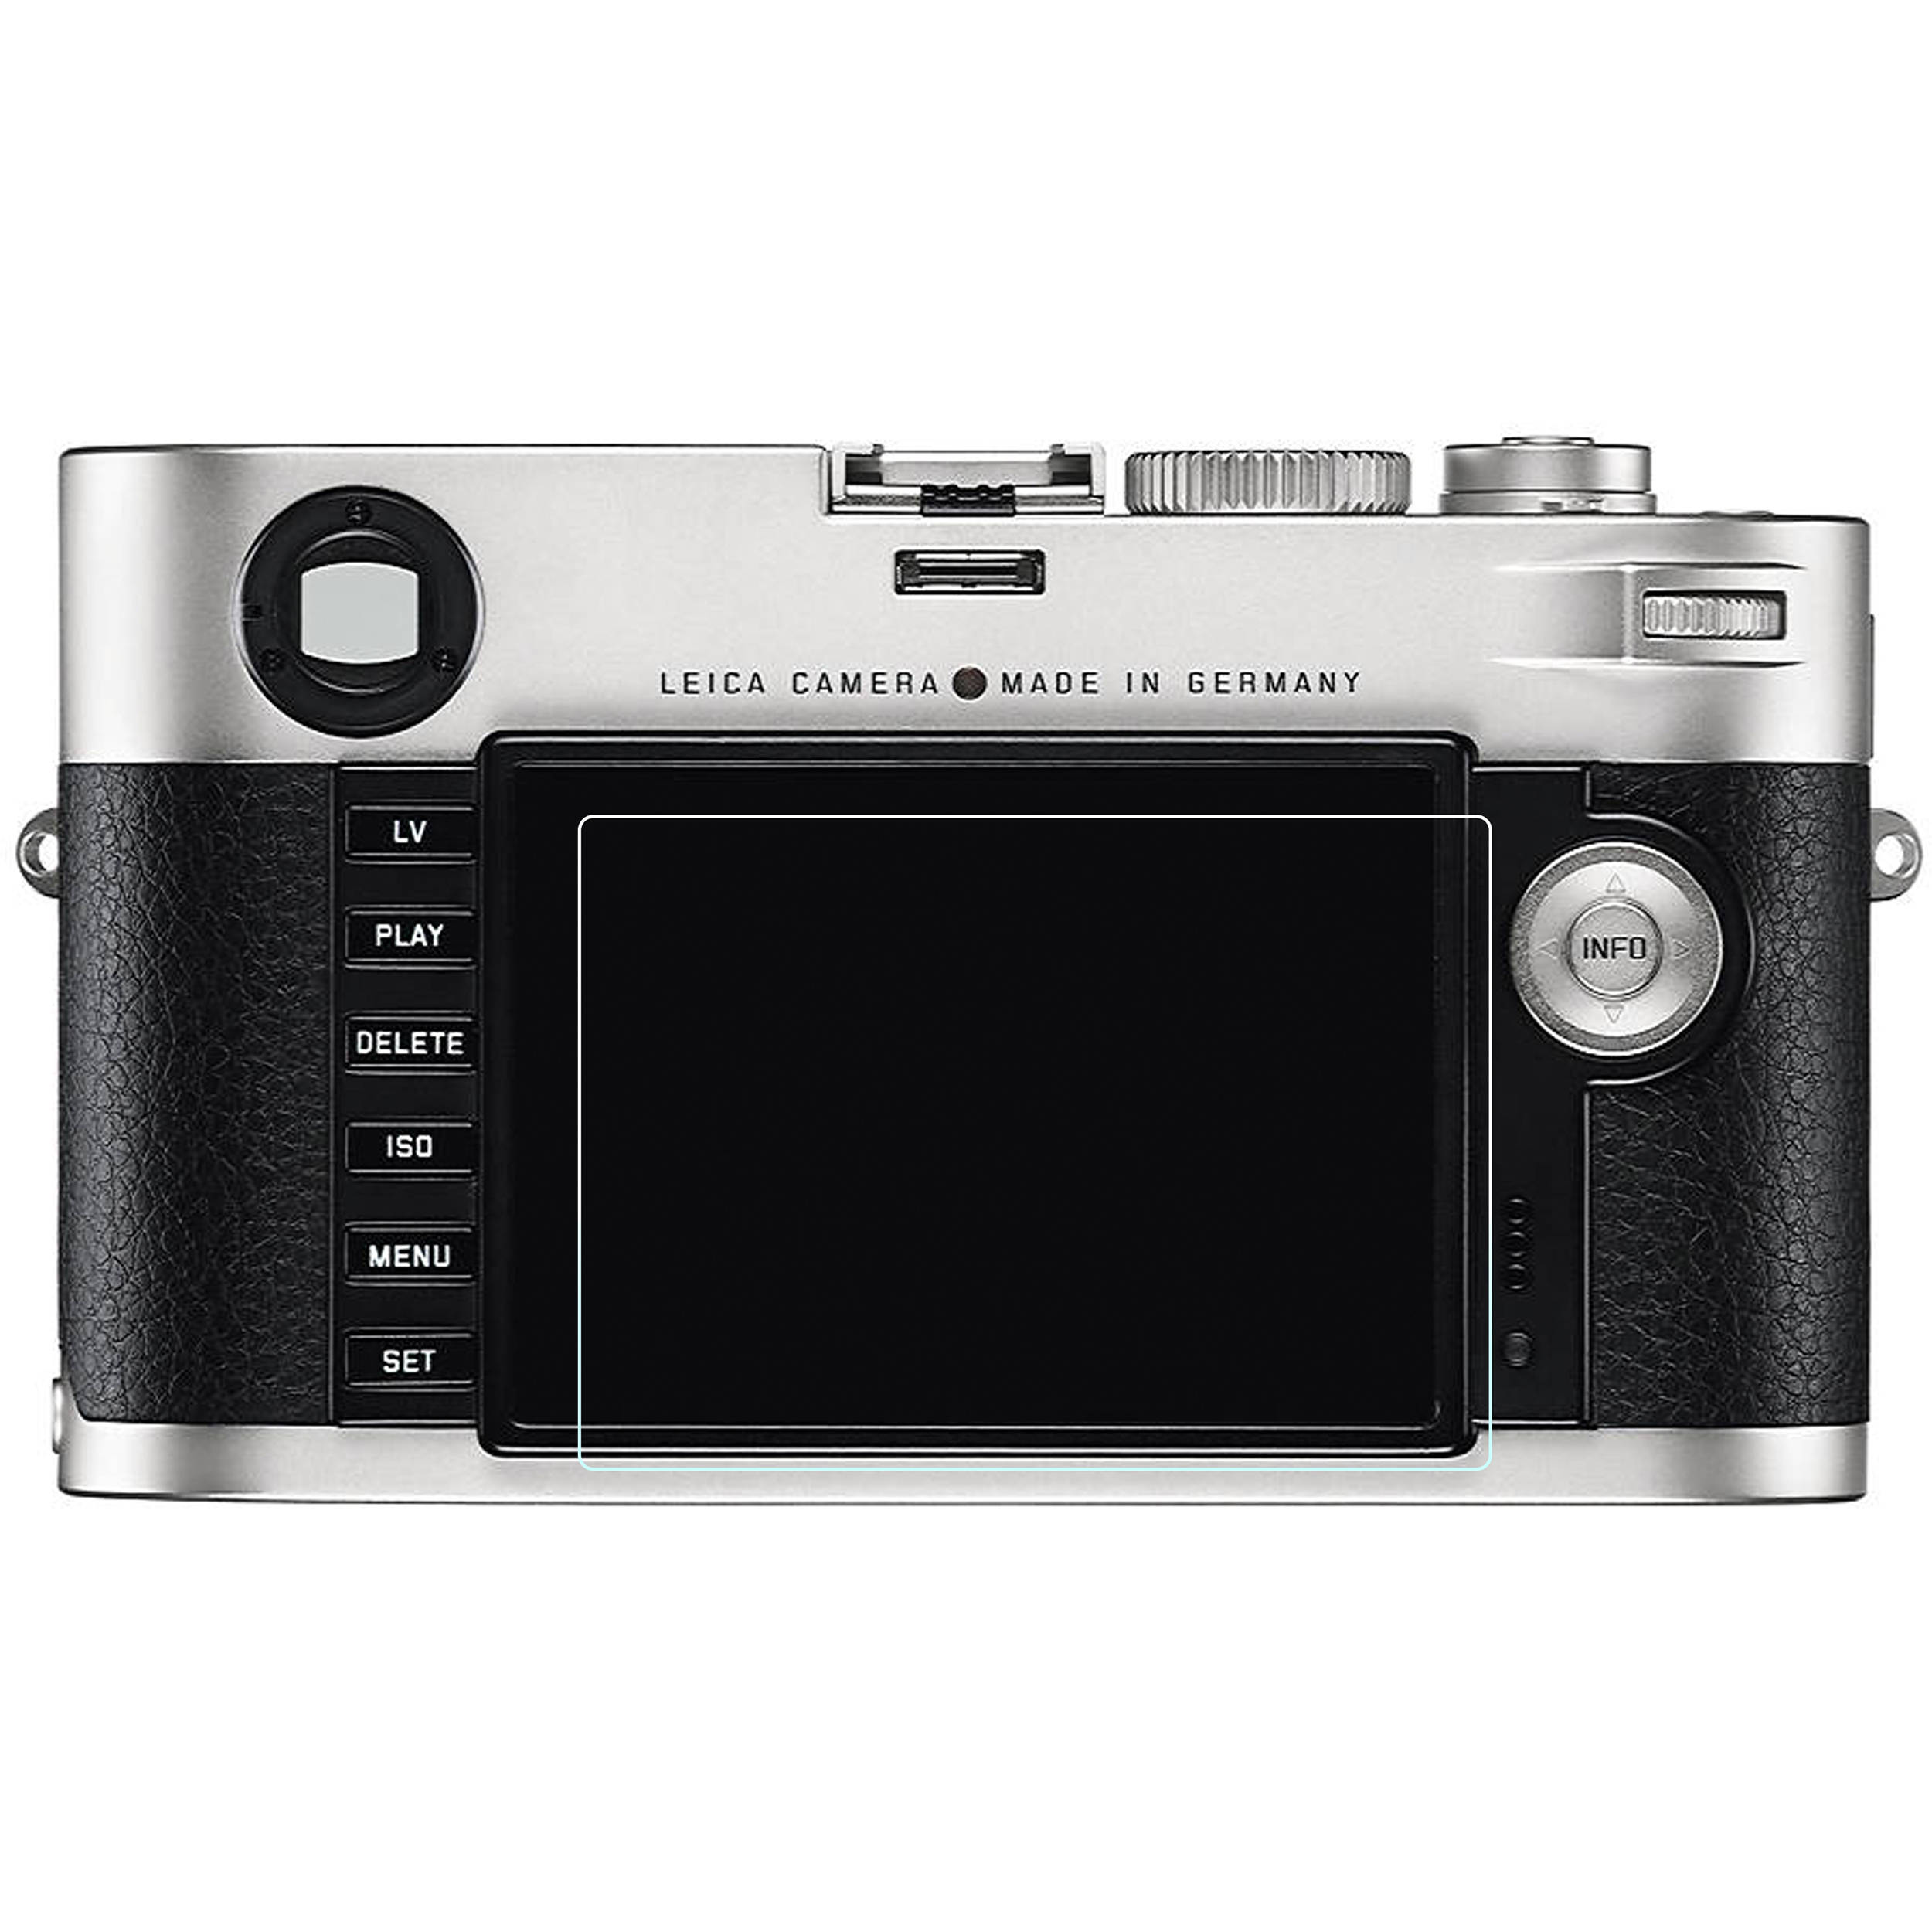 Phantom Glass LCD Screen Protector for Leica M (Typ 240). Shown in use, for illustrative purposes only